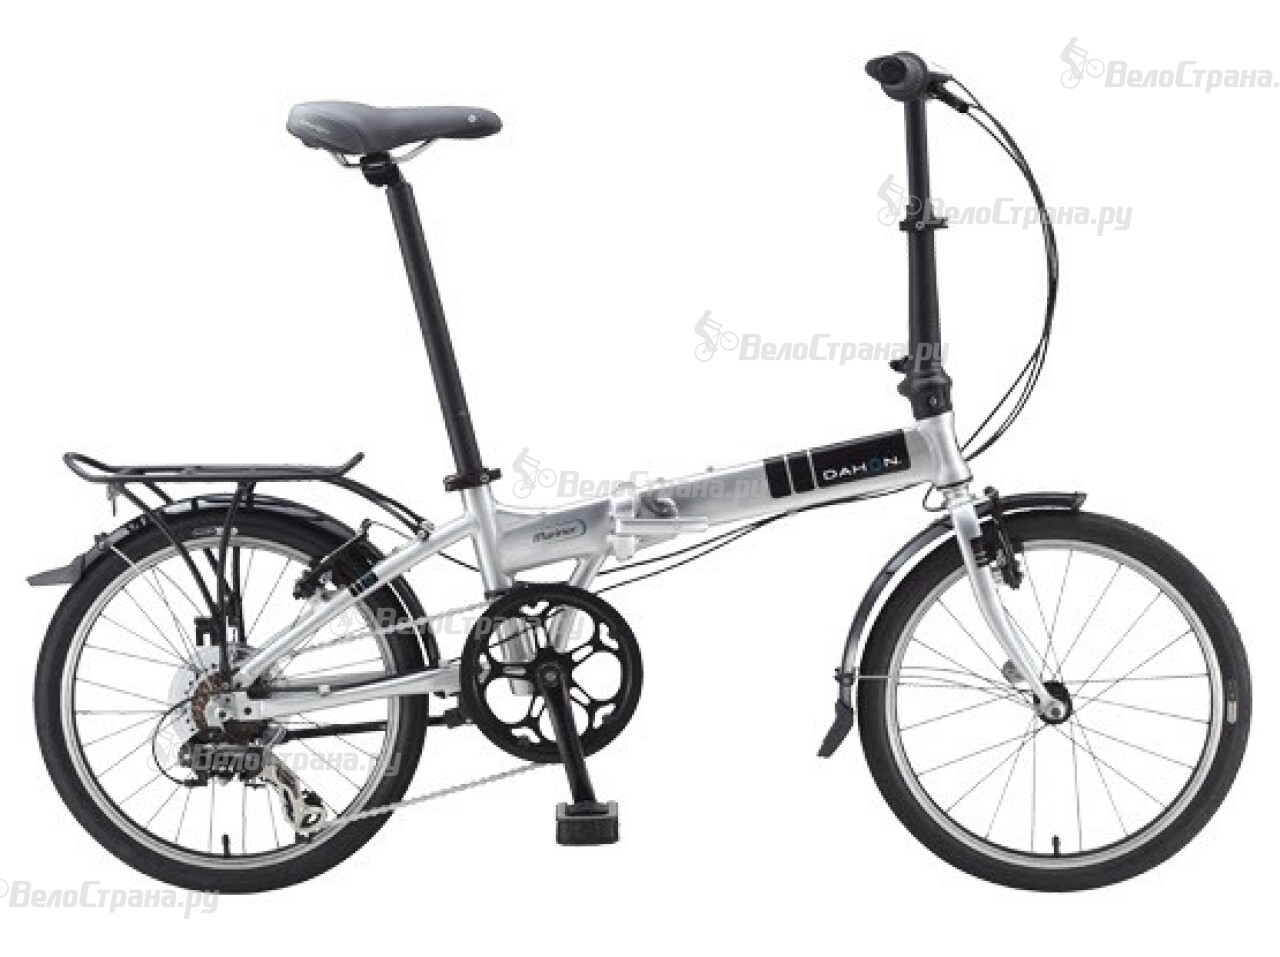 Велосипед Dahon Mariner D7 (2015) велосипед dahon speed d7 2016